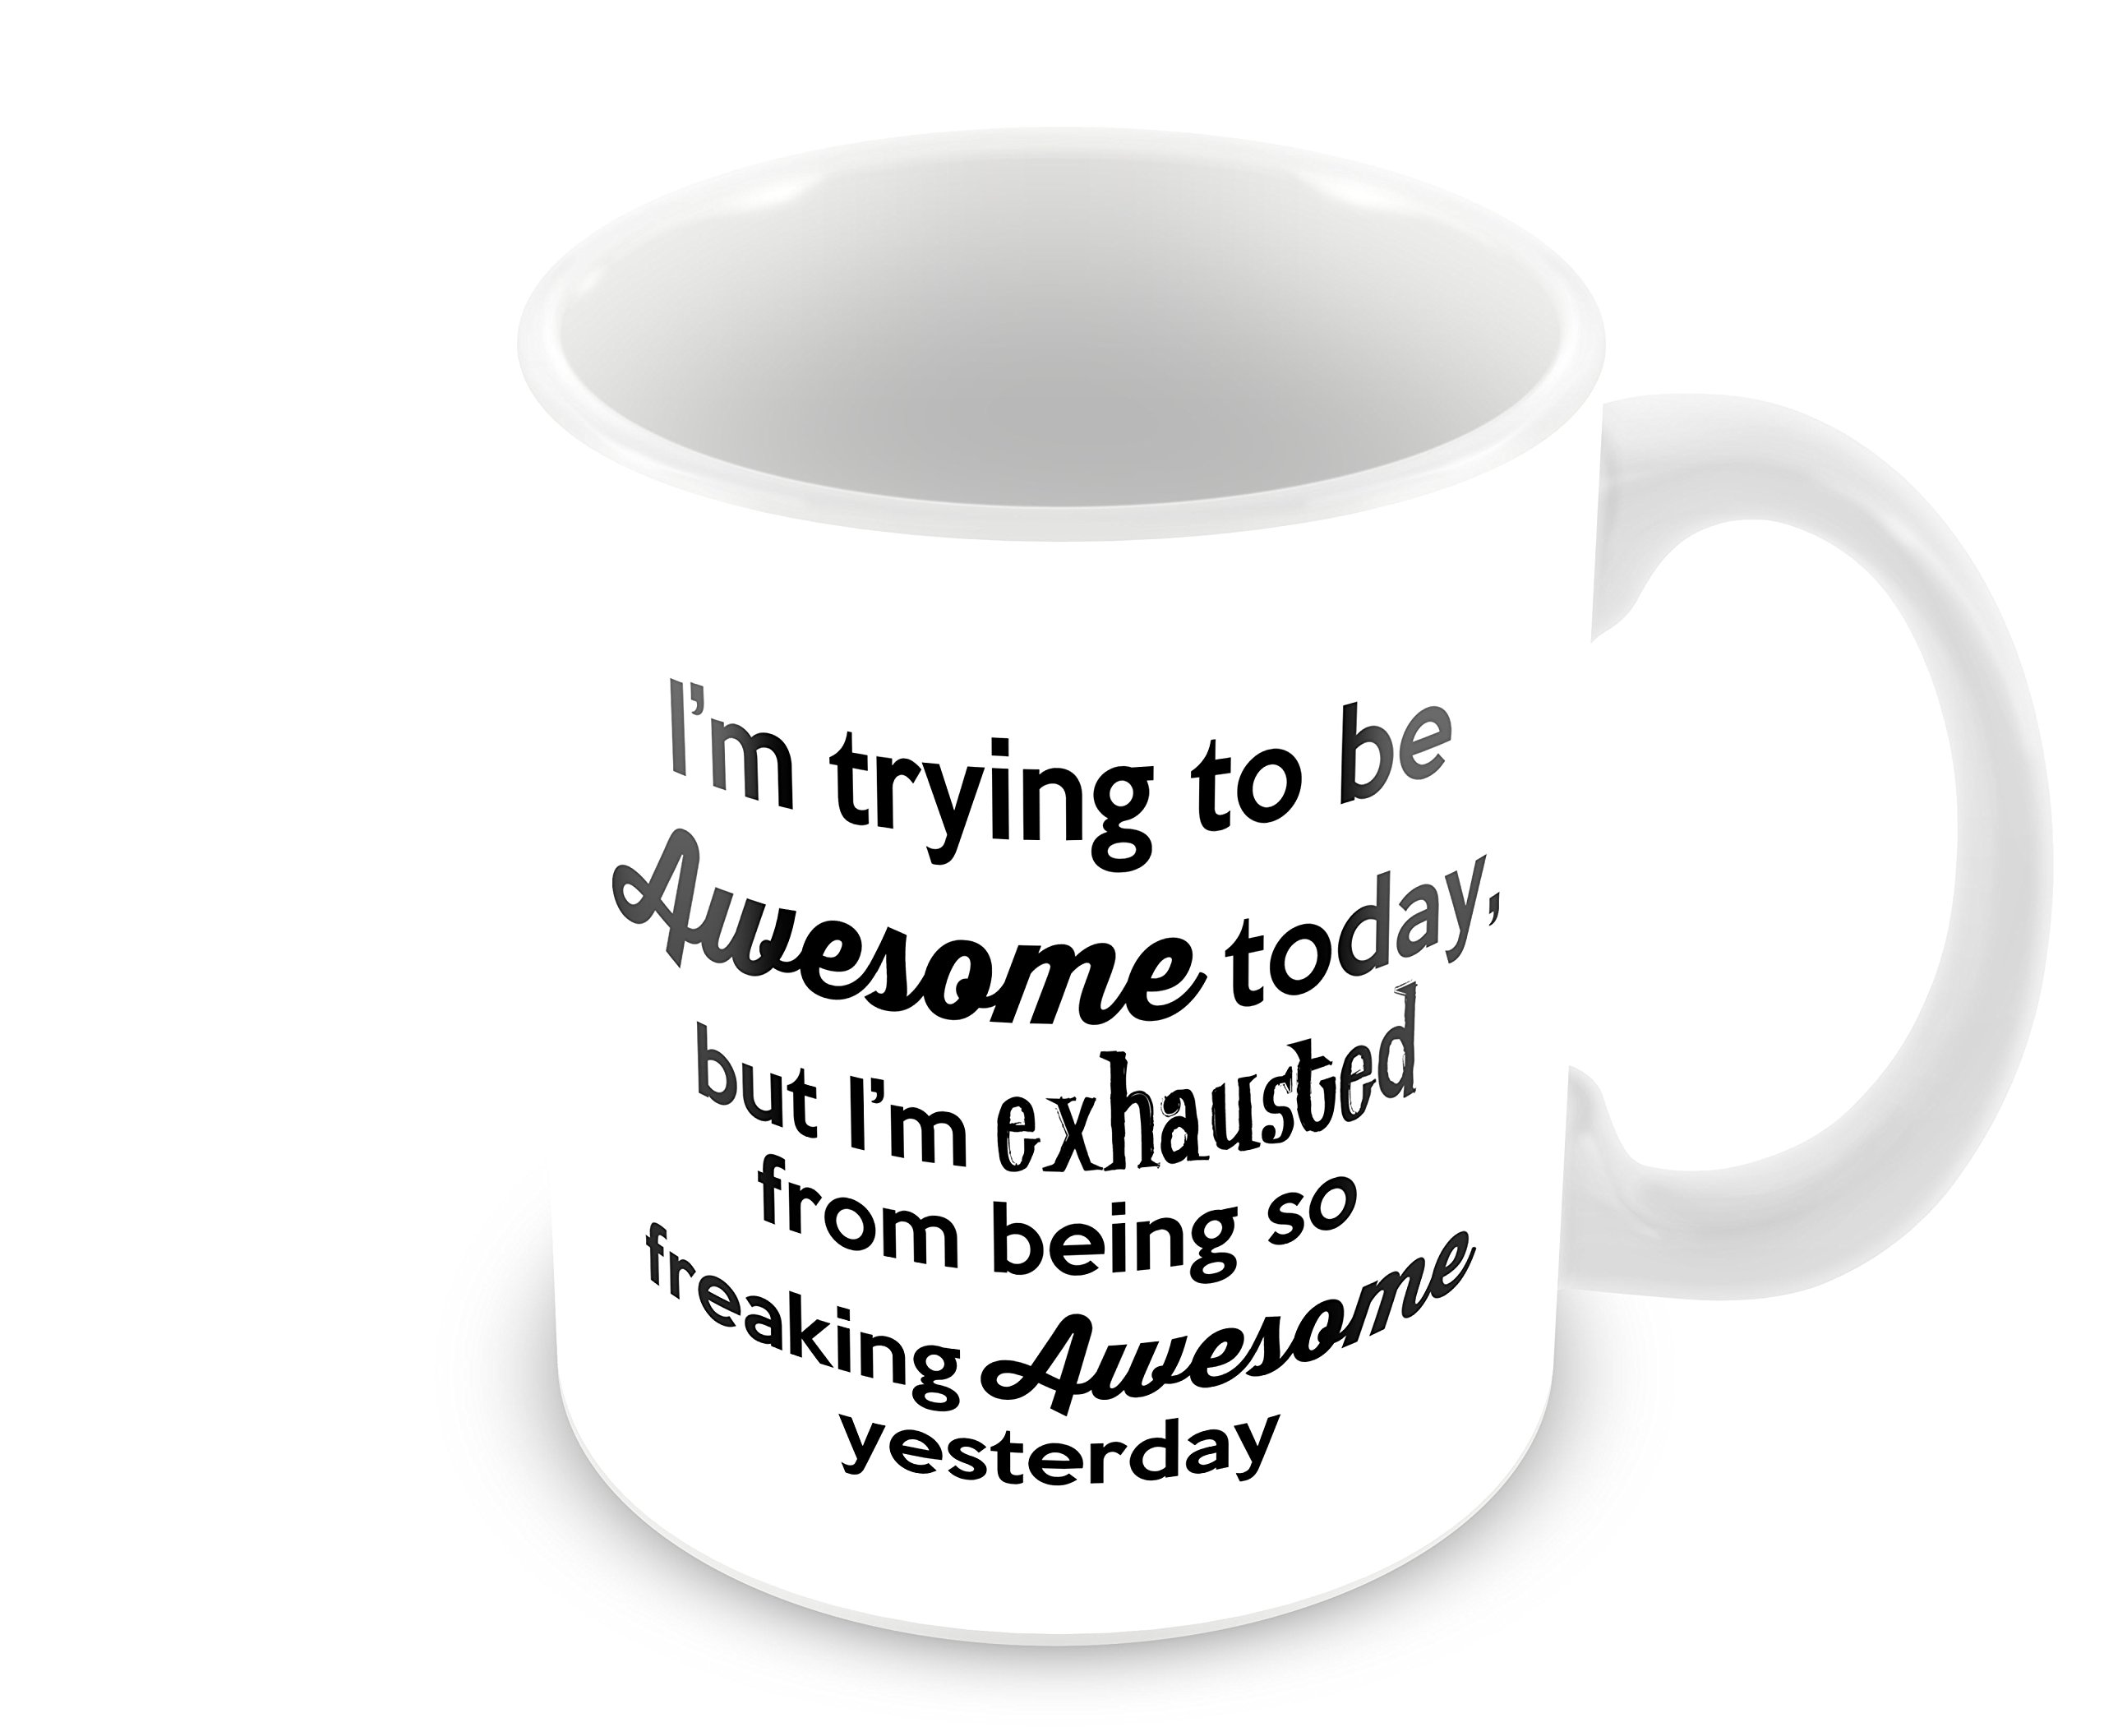 Geek Details I'm Trying to Be Awesome Today but I'm Exhausted From Being Freakin Awesome Yesterday Coffee Mug, 11 oz, White